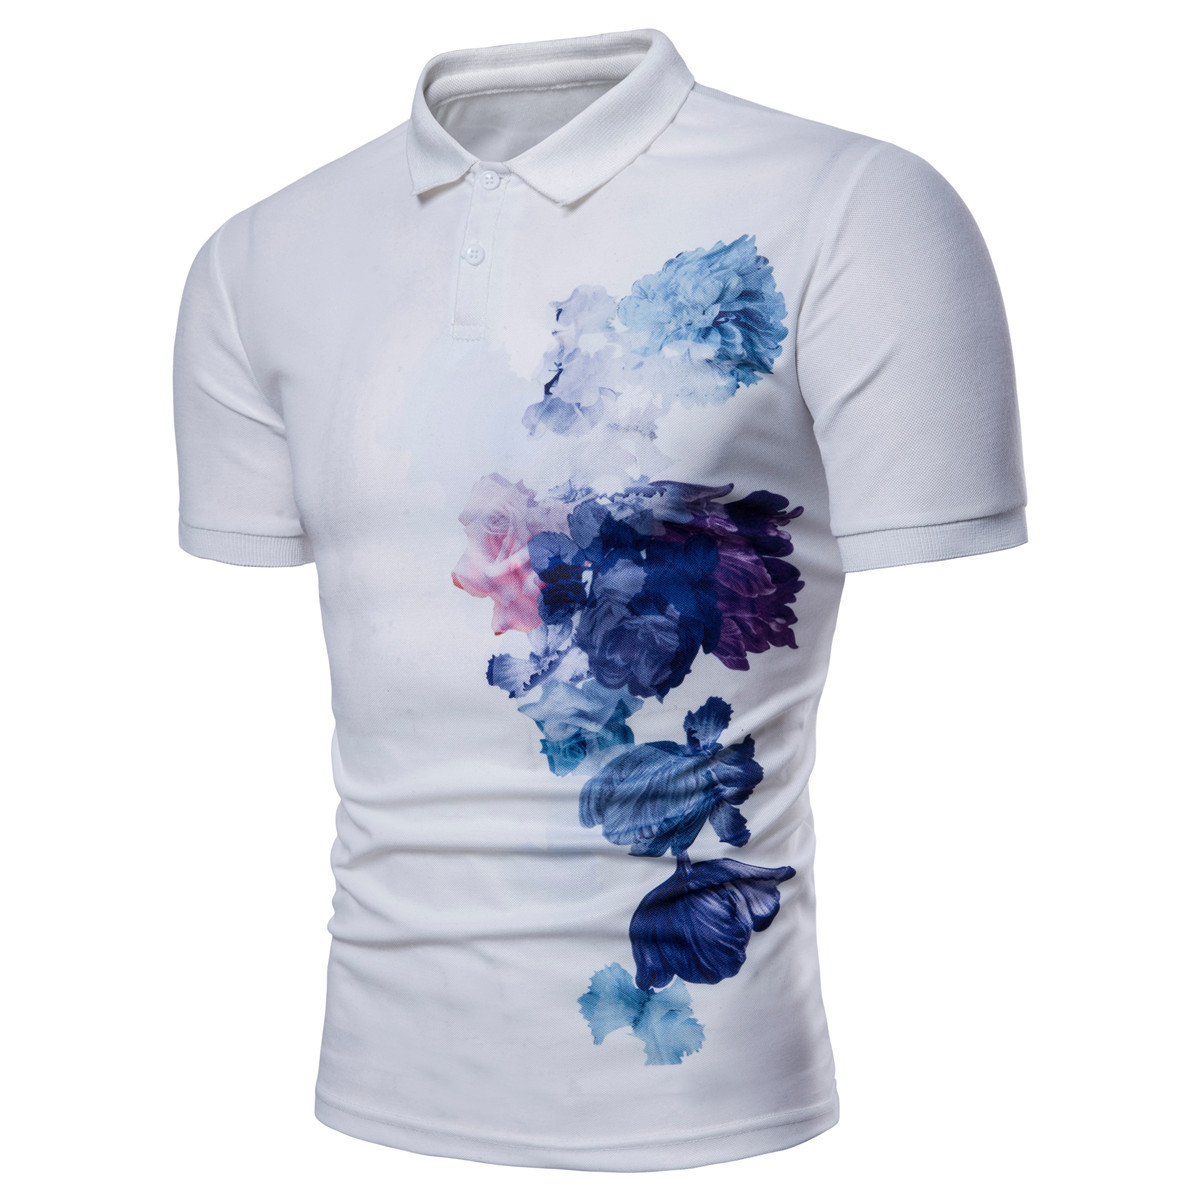 Ink Flower Printing 2018 Summer New Men's   Polo   Shirt Brands Homme Slim Short Sleeve Camisa   Polo   Men Casual   Polos   Shirts PL15